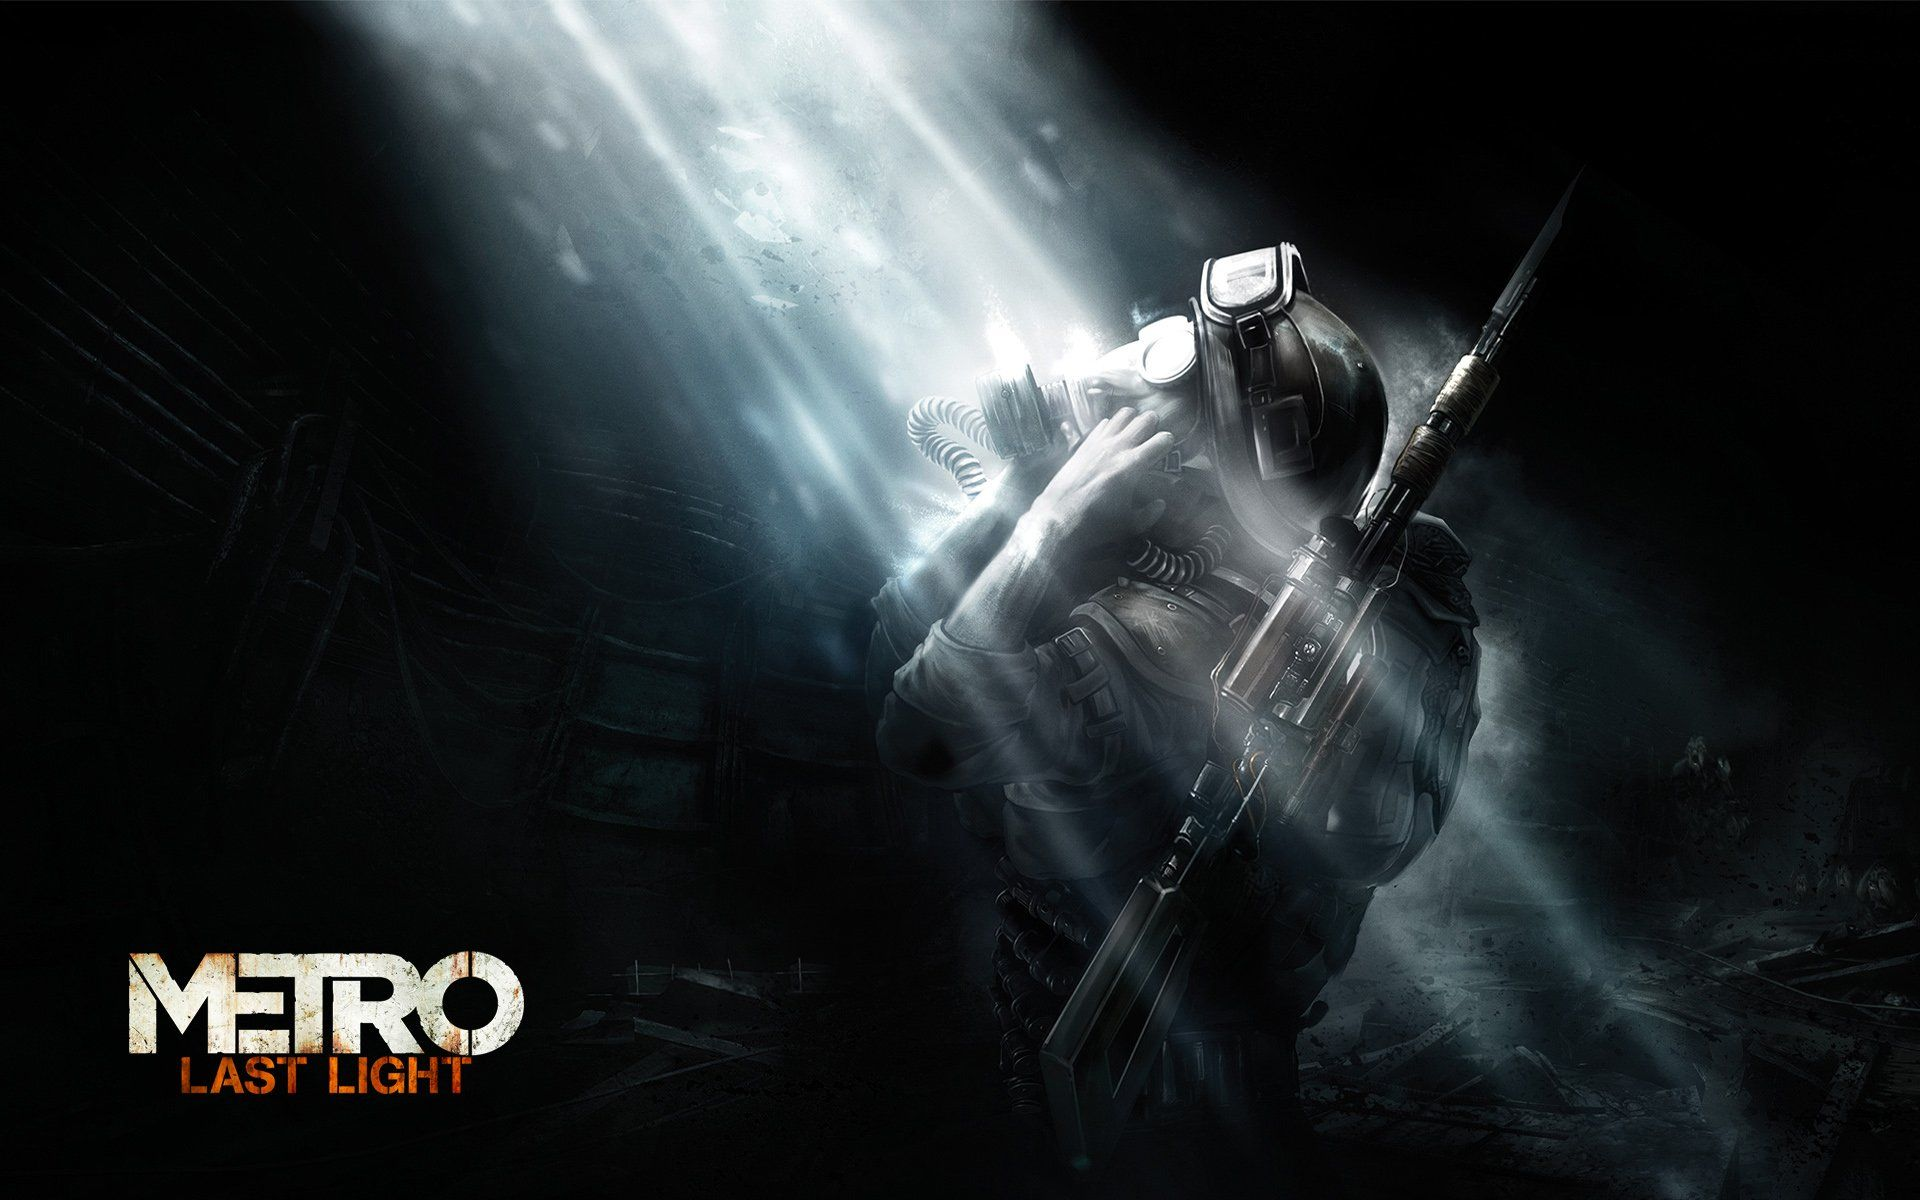 Metro Wallpaper Walldevil Metro Last Light Light In The Dark Poster Prints